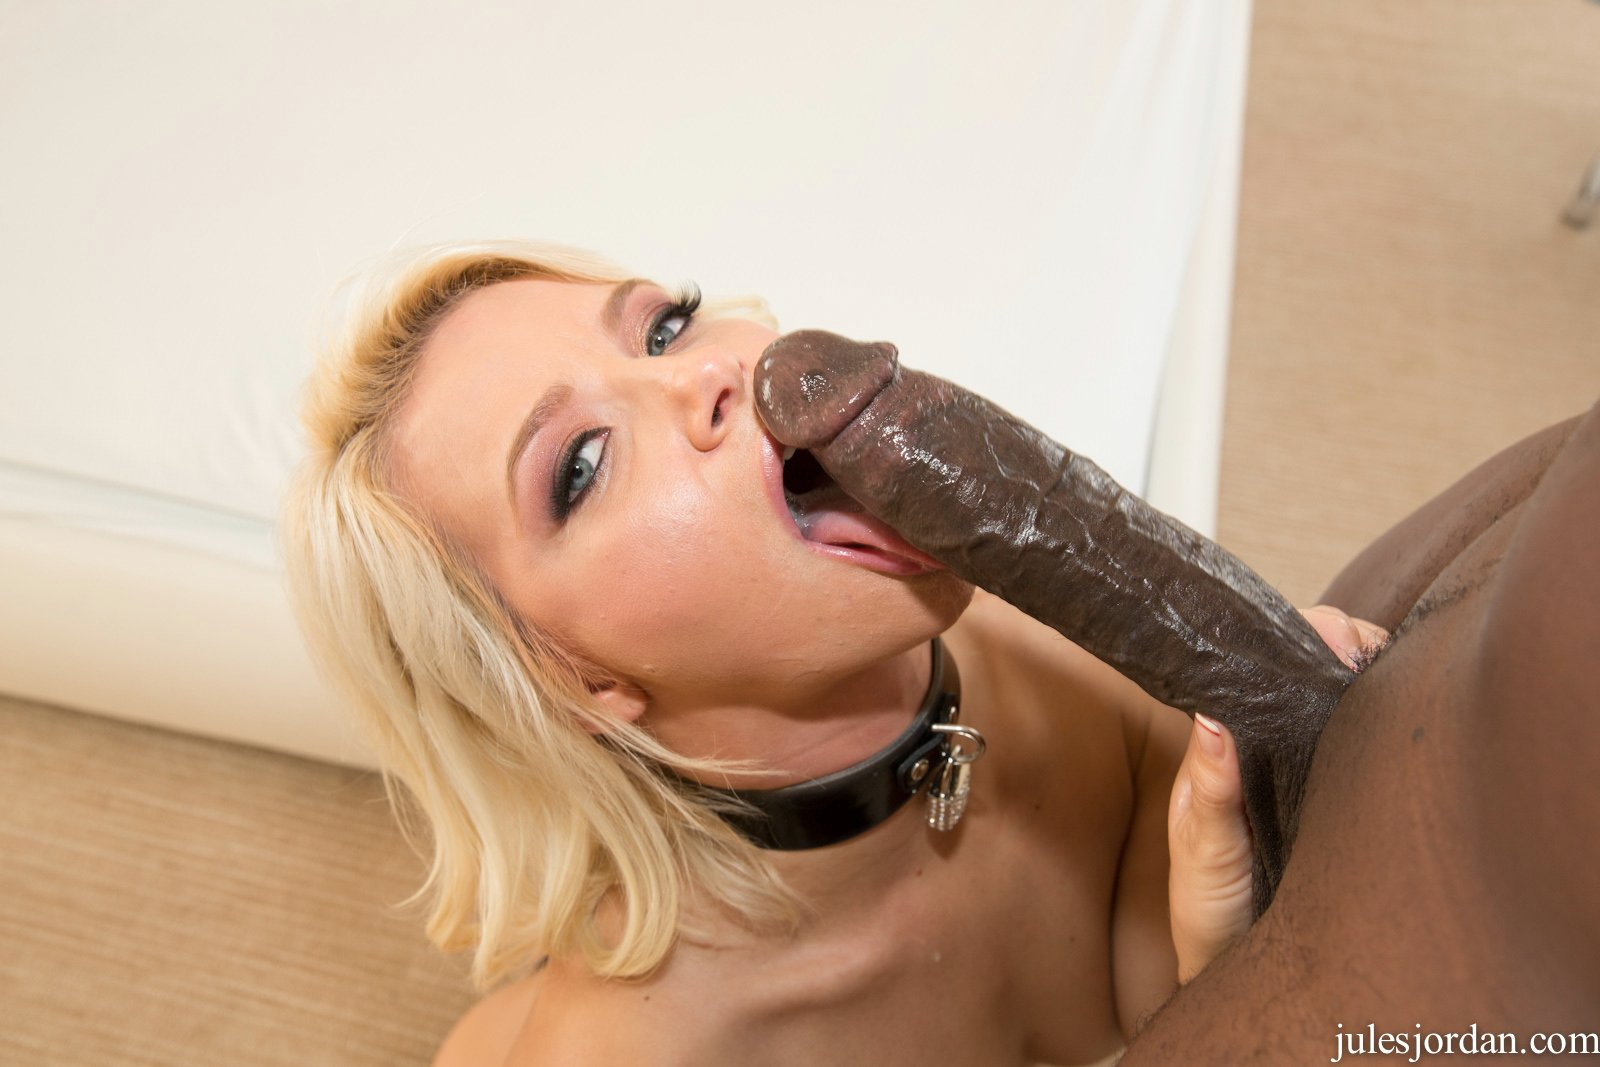 Blonde milf fucking a toy outdoors 6